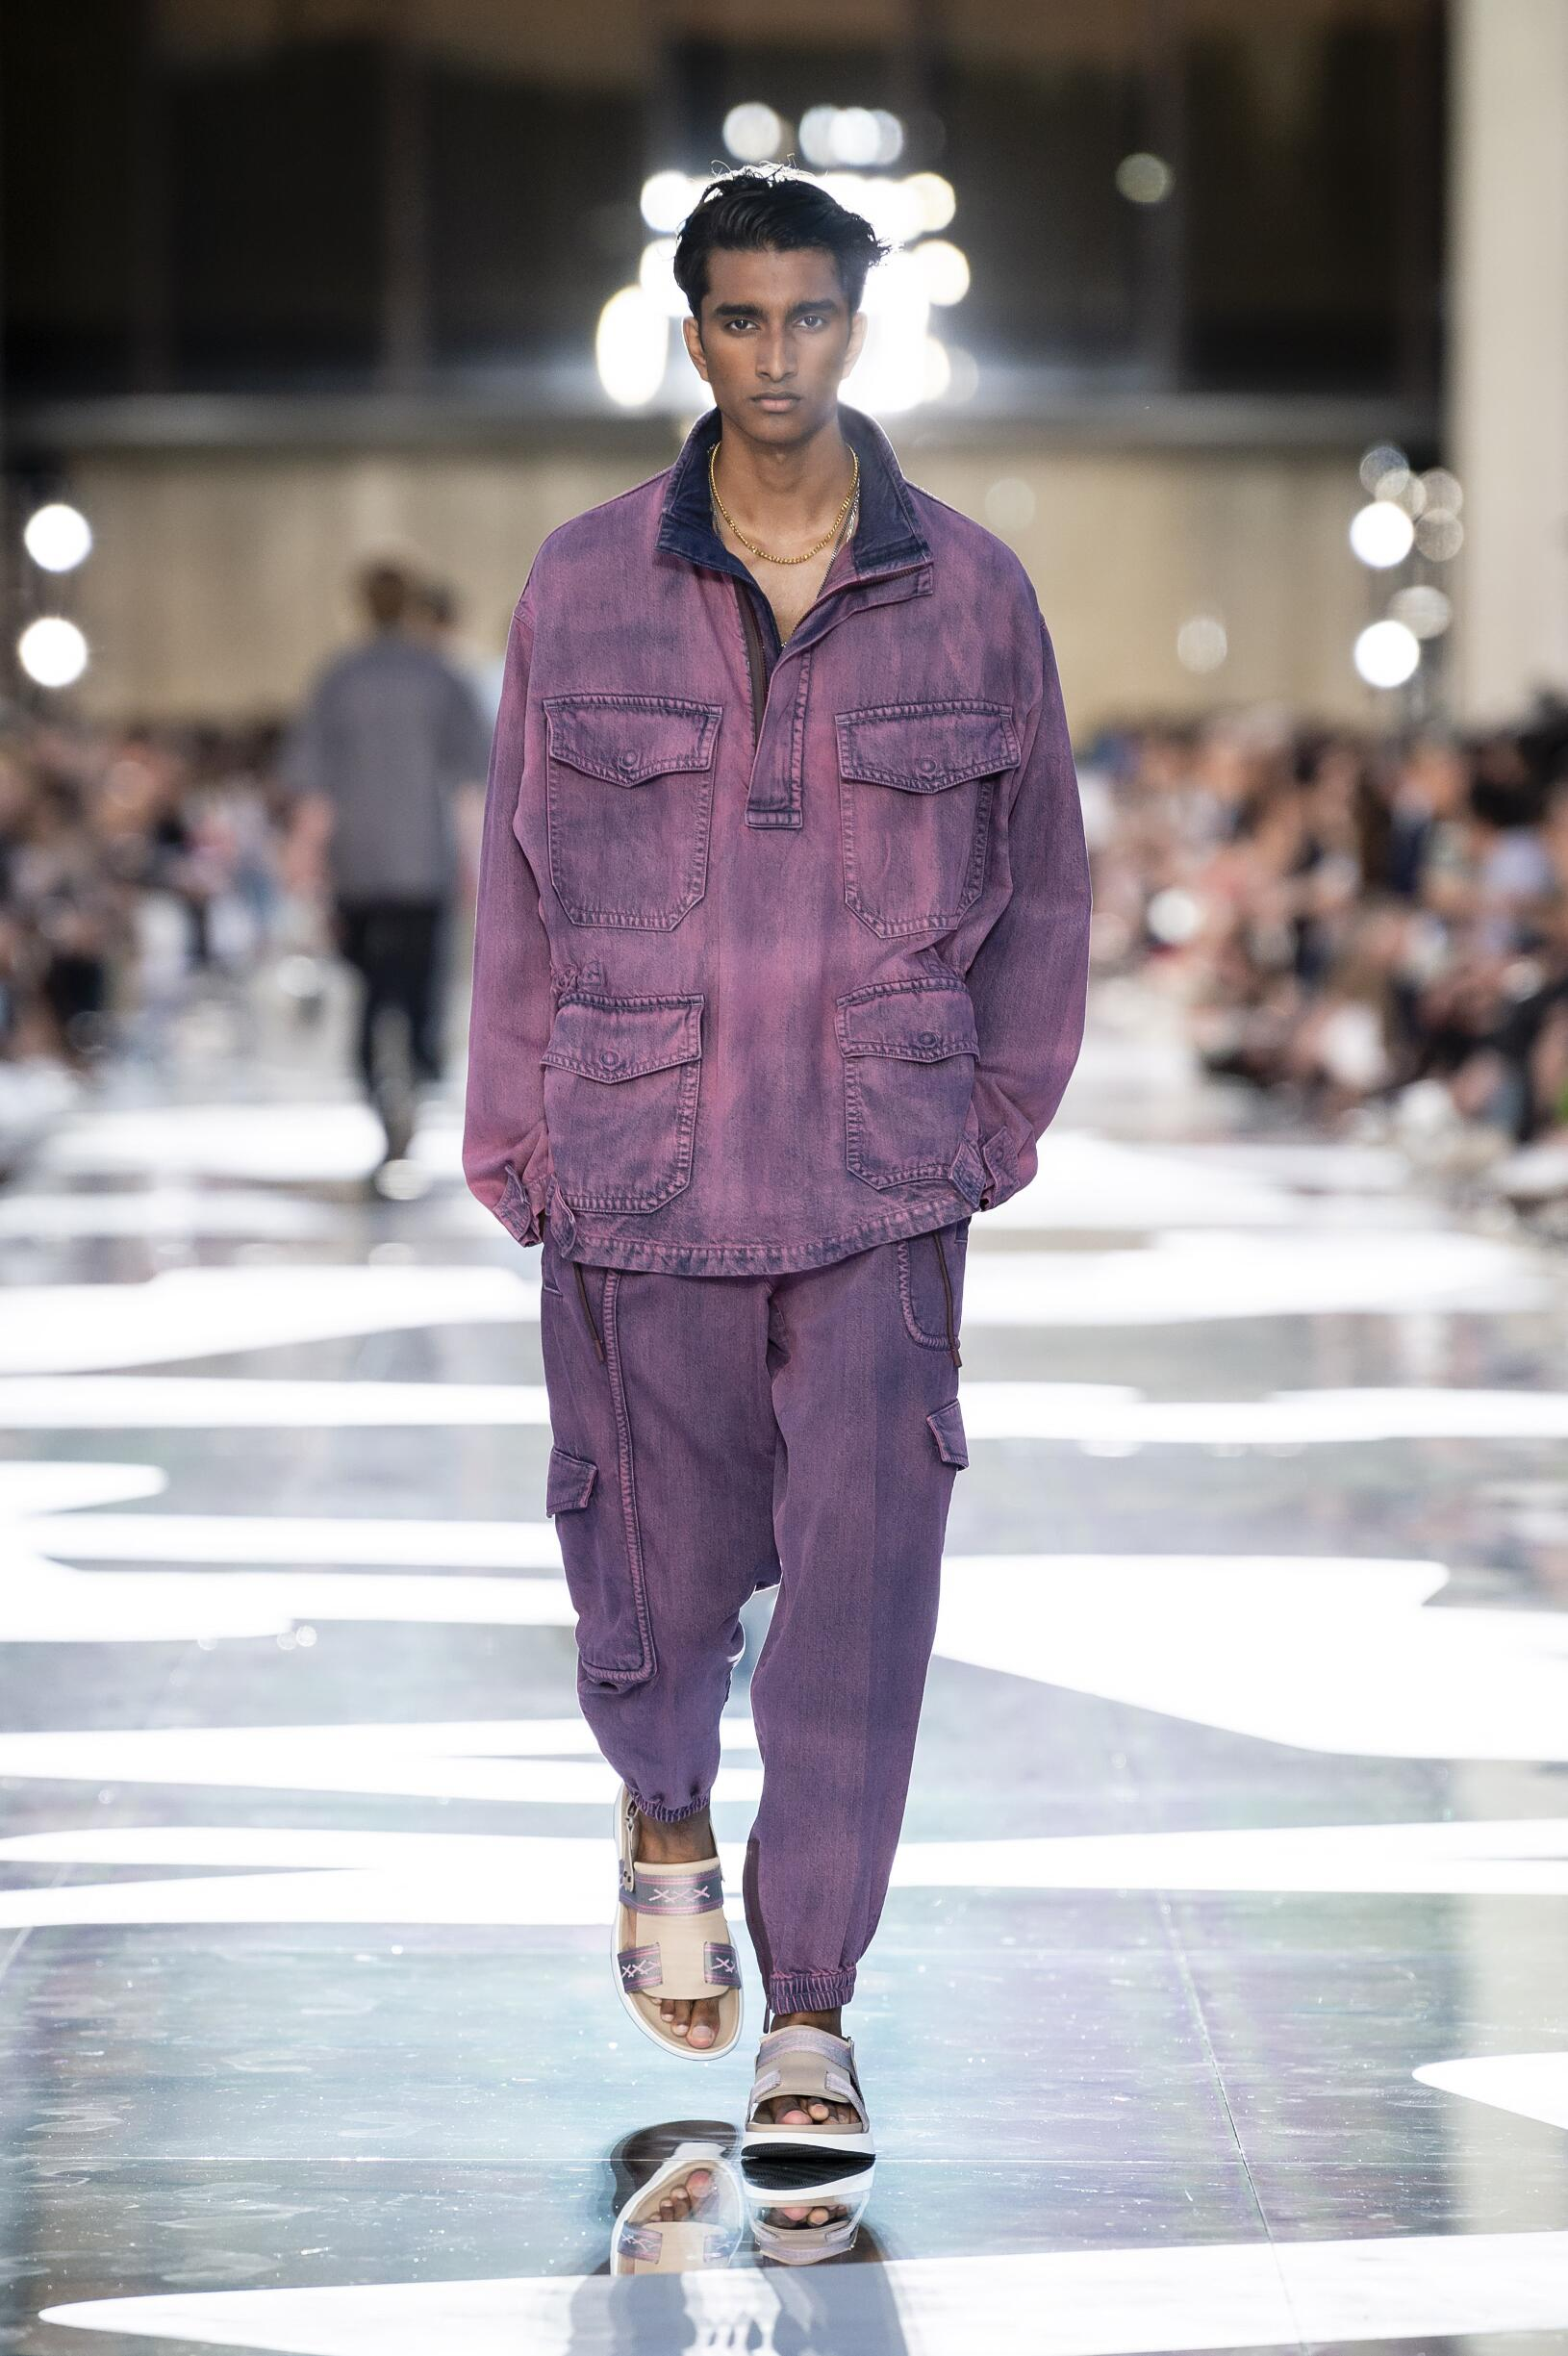 2019 Catwalk Ermenegildo Zegna Couture Man Fashion Show Summer